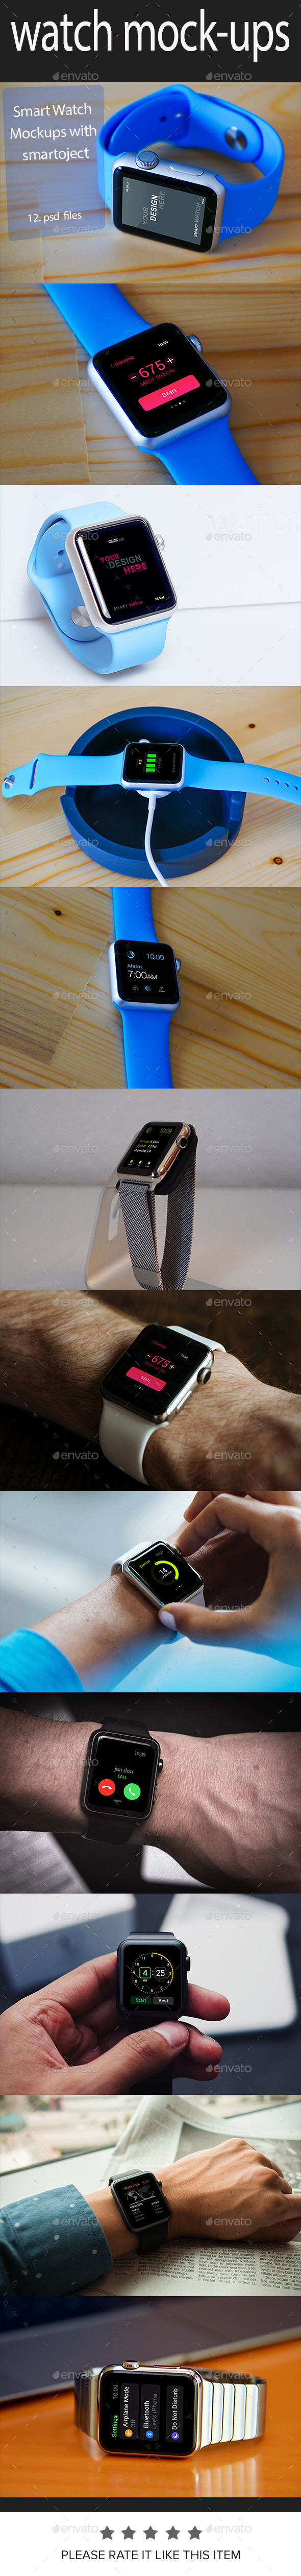 Watch Mockups (Displays)